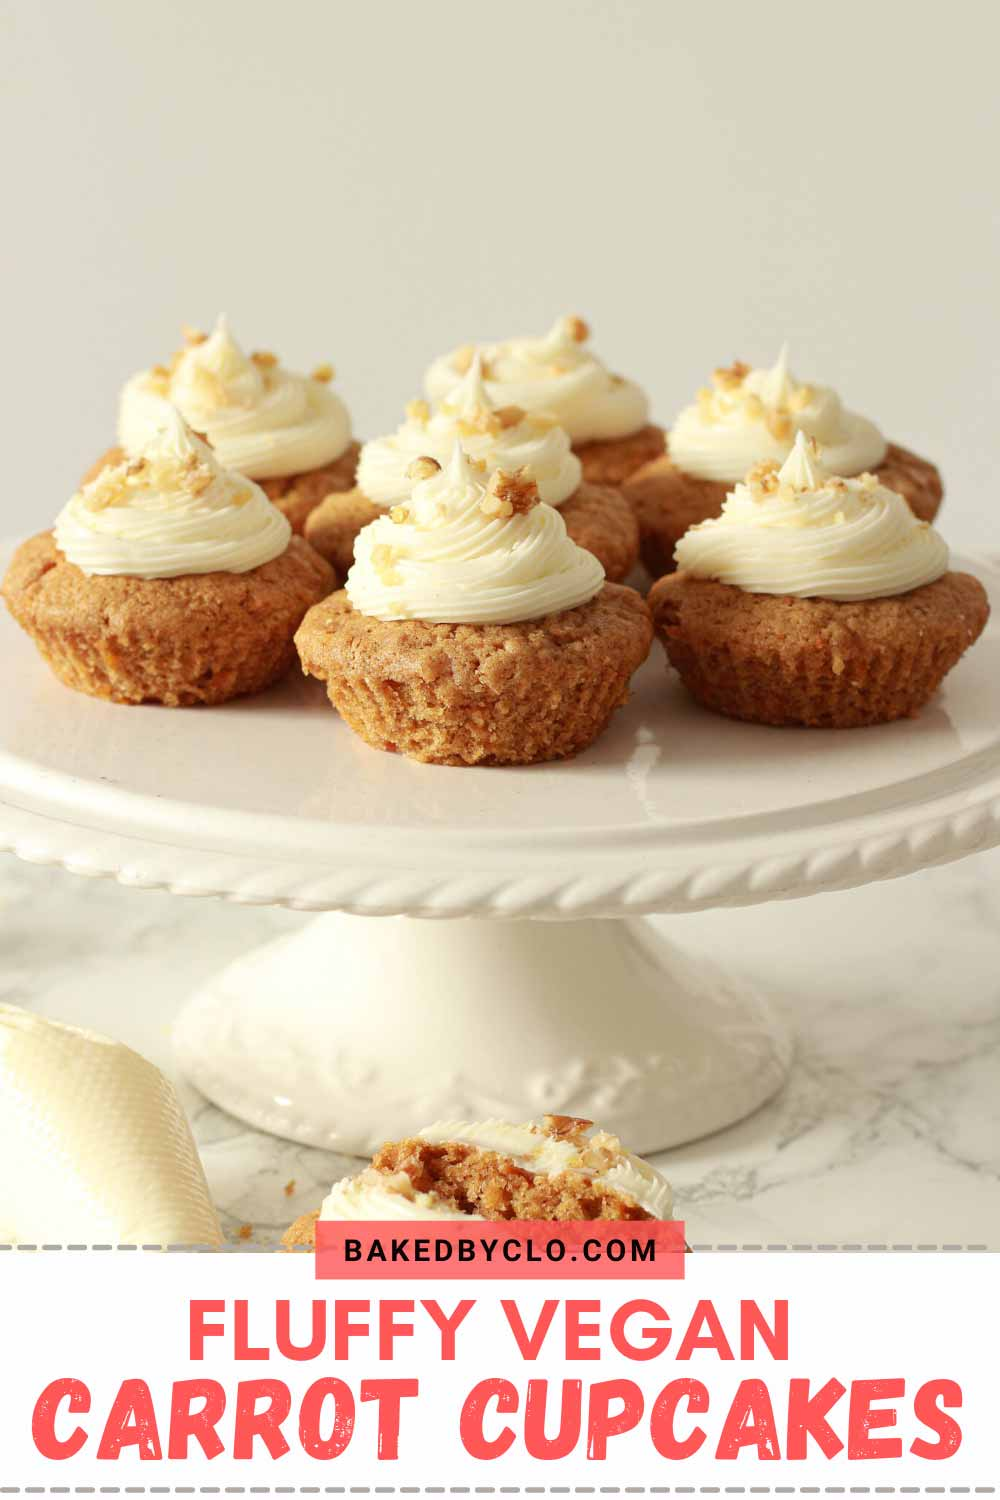 Pinterest pin for cupcakes